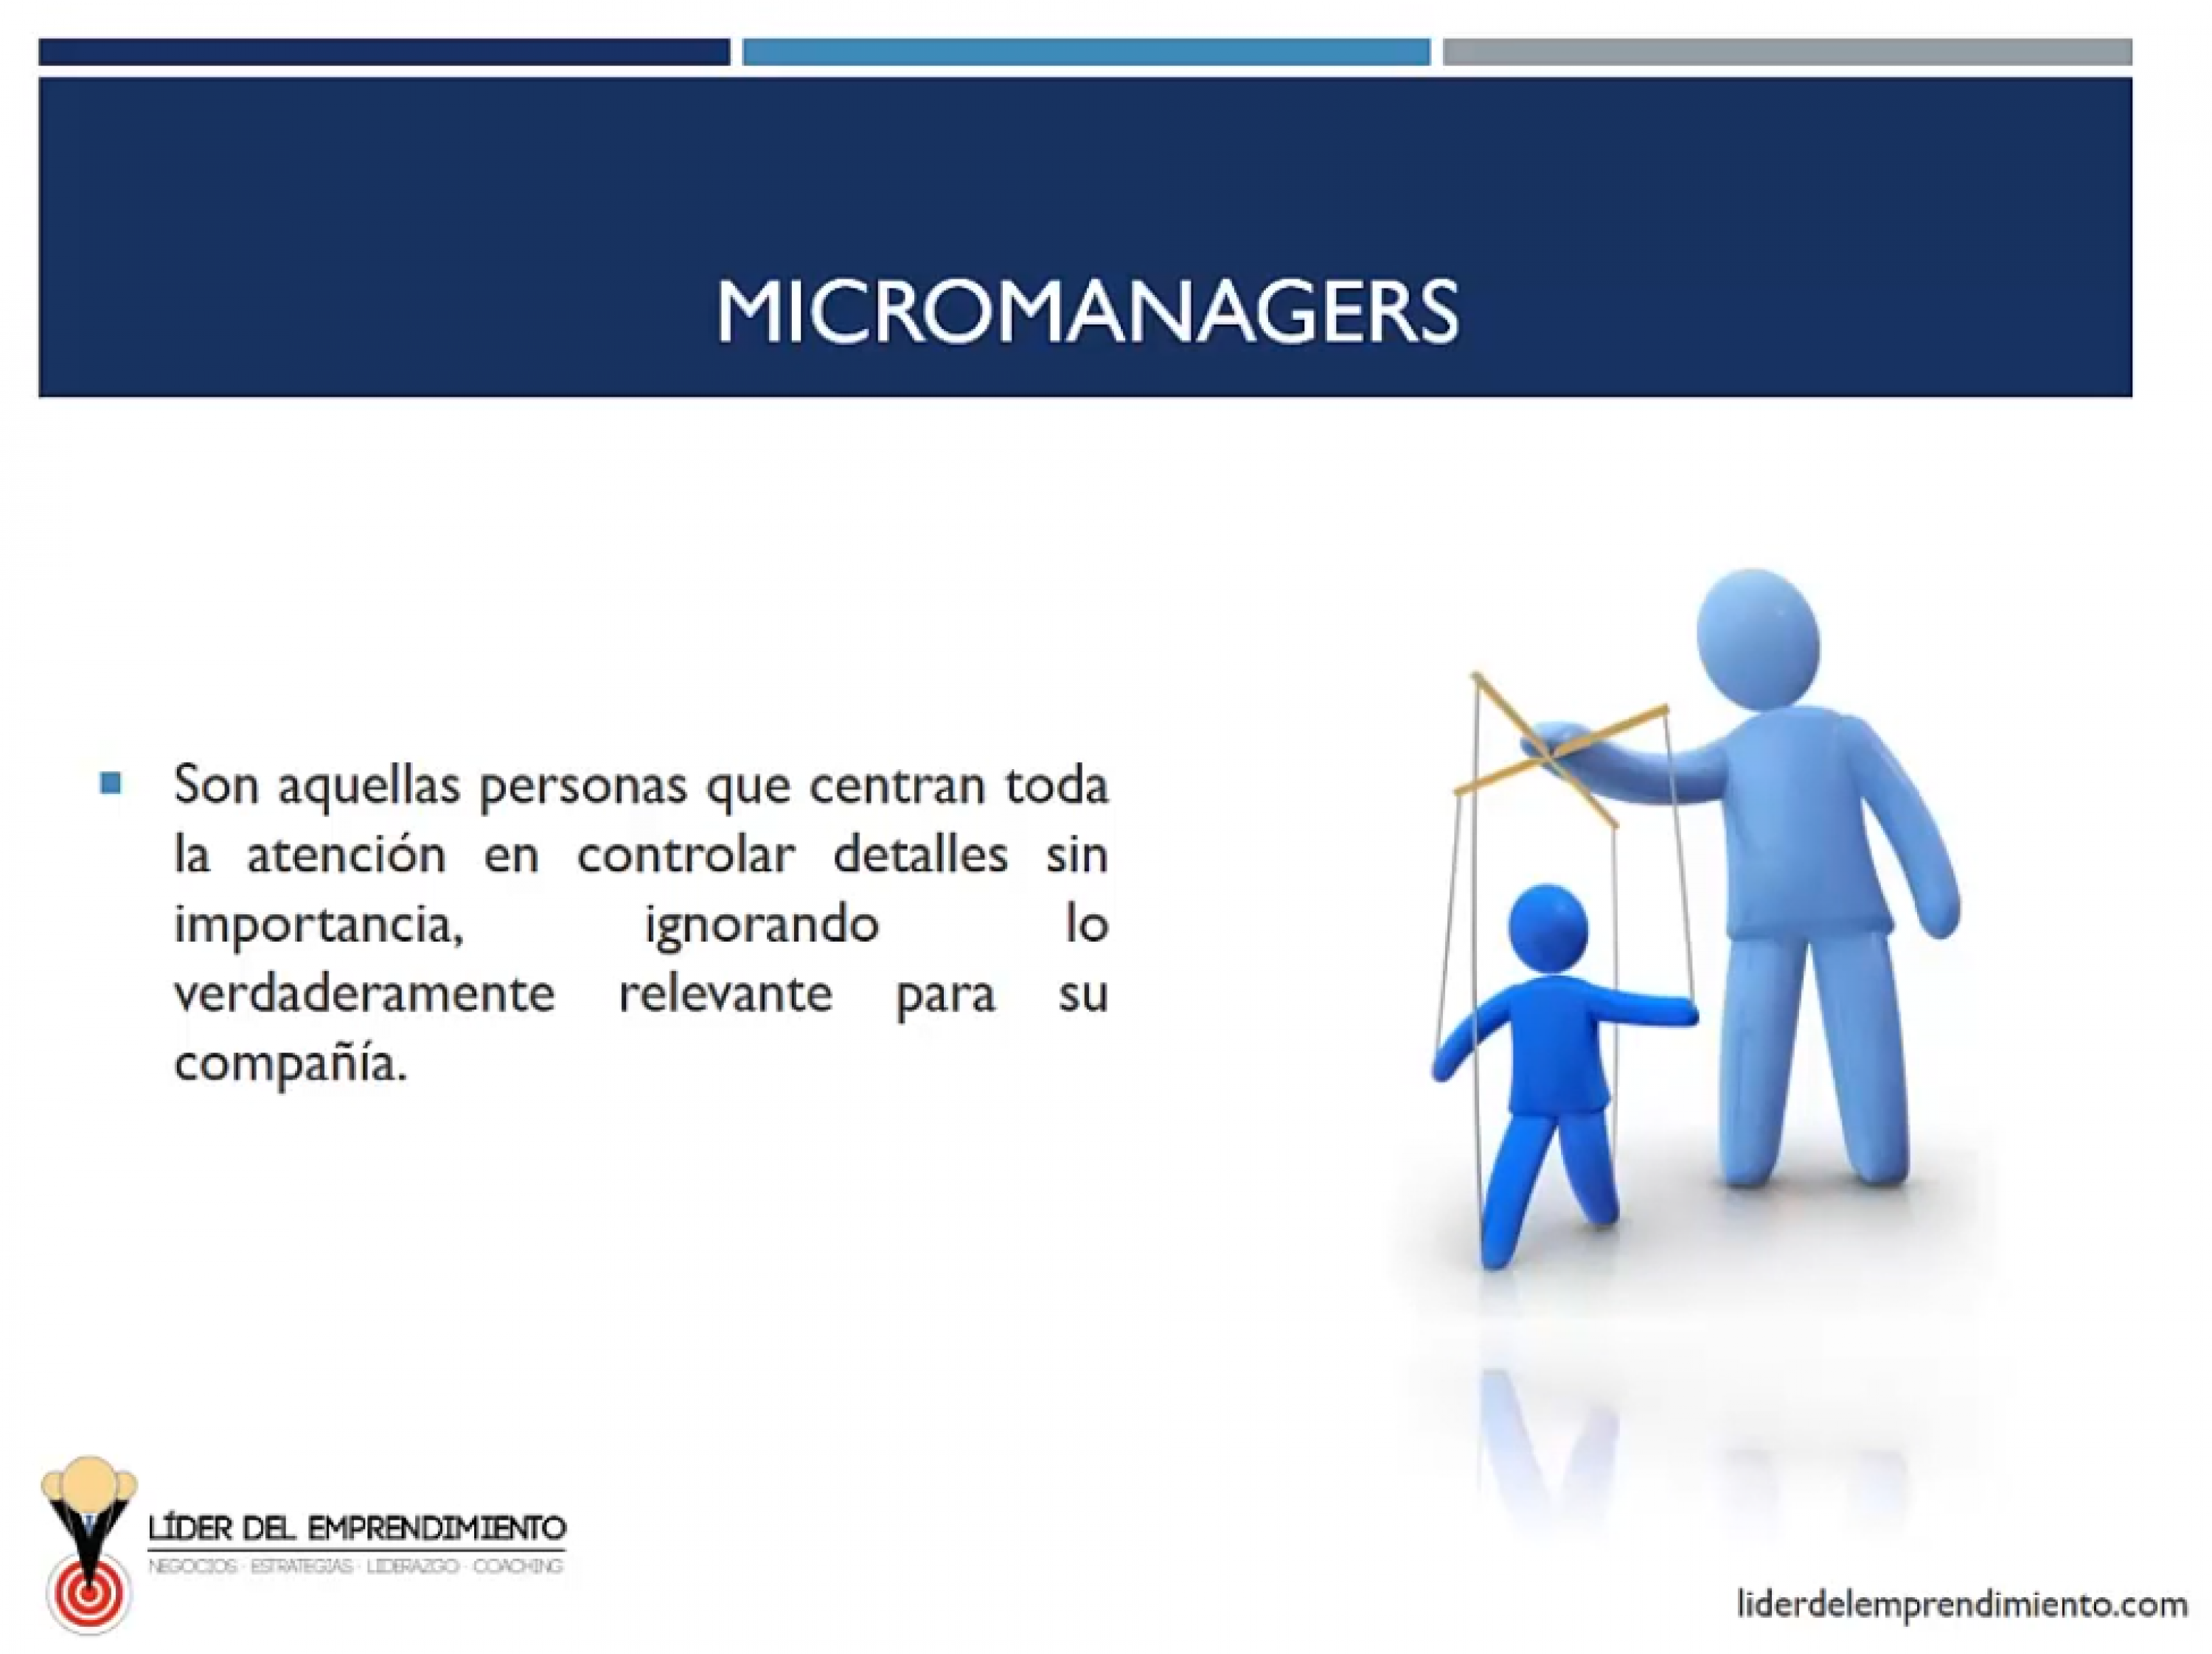 Micromanagers